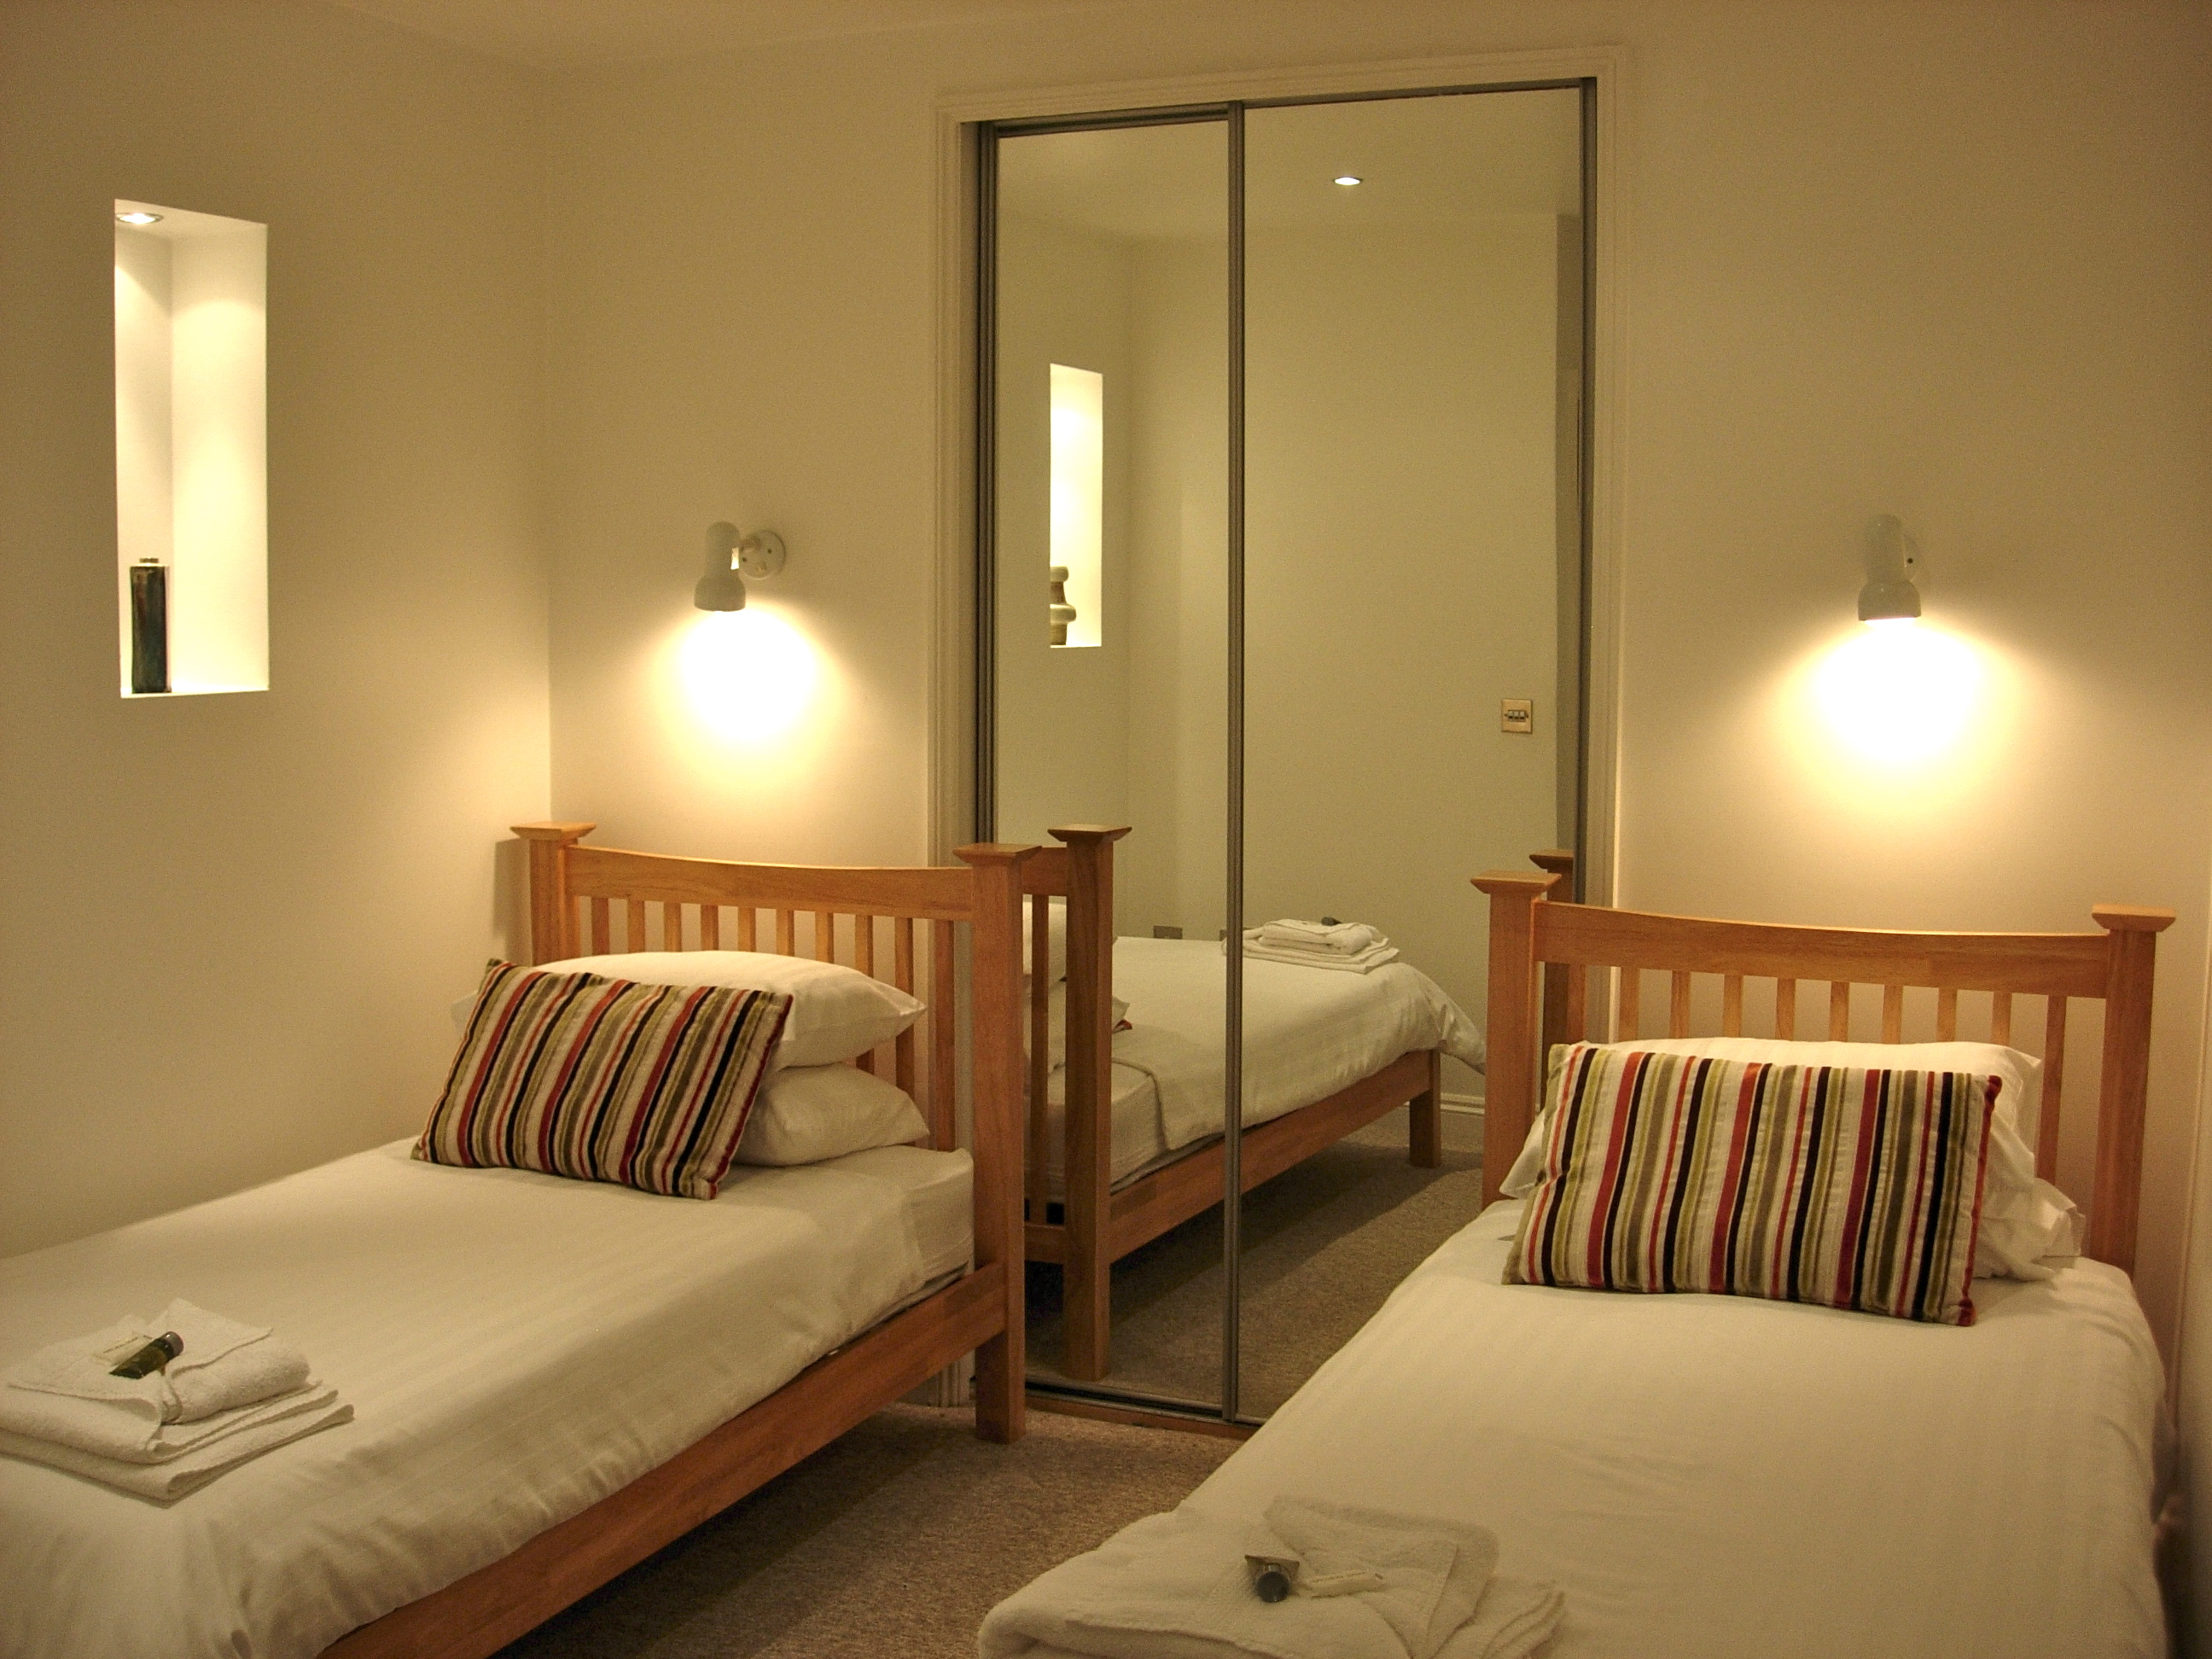 Bedrooms rock cottage the warren st ives cornwall - Bedroom reading lights wall mounted ...